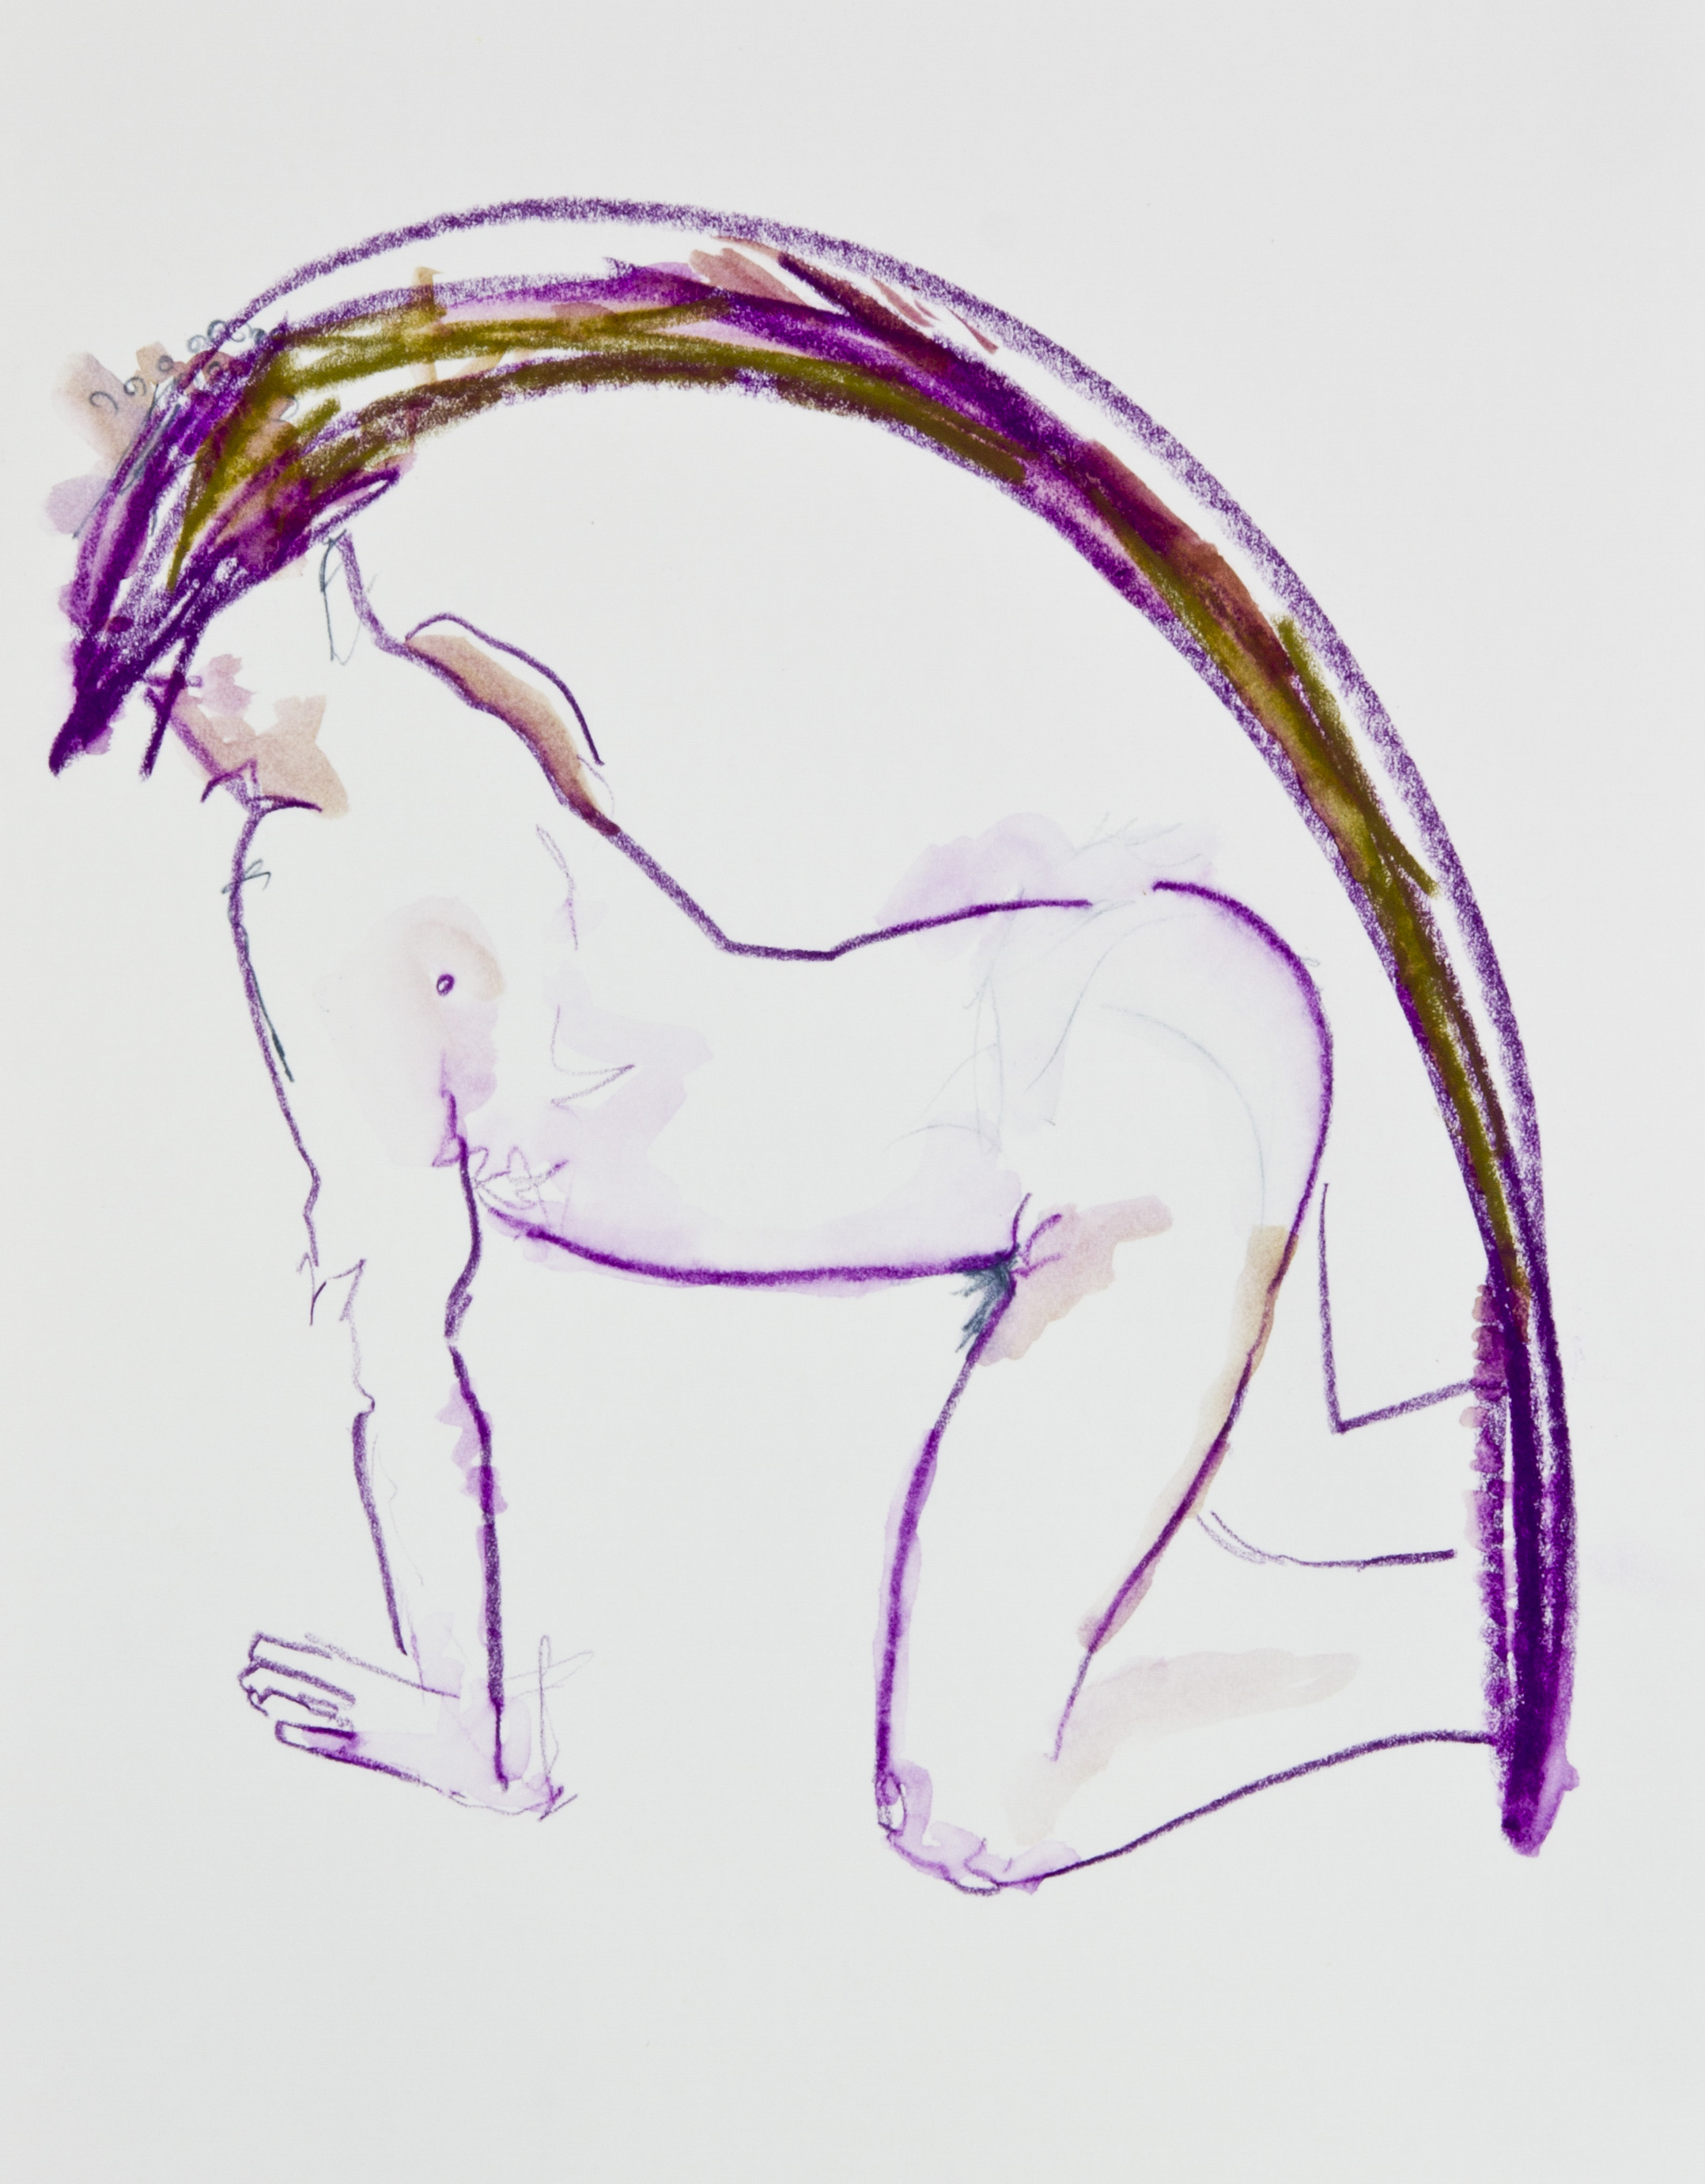 Bending Backwards 2013, graphite, crayon and watercolor pencil on paper, 11x14 inches